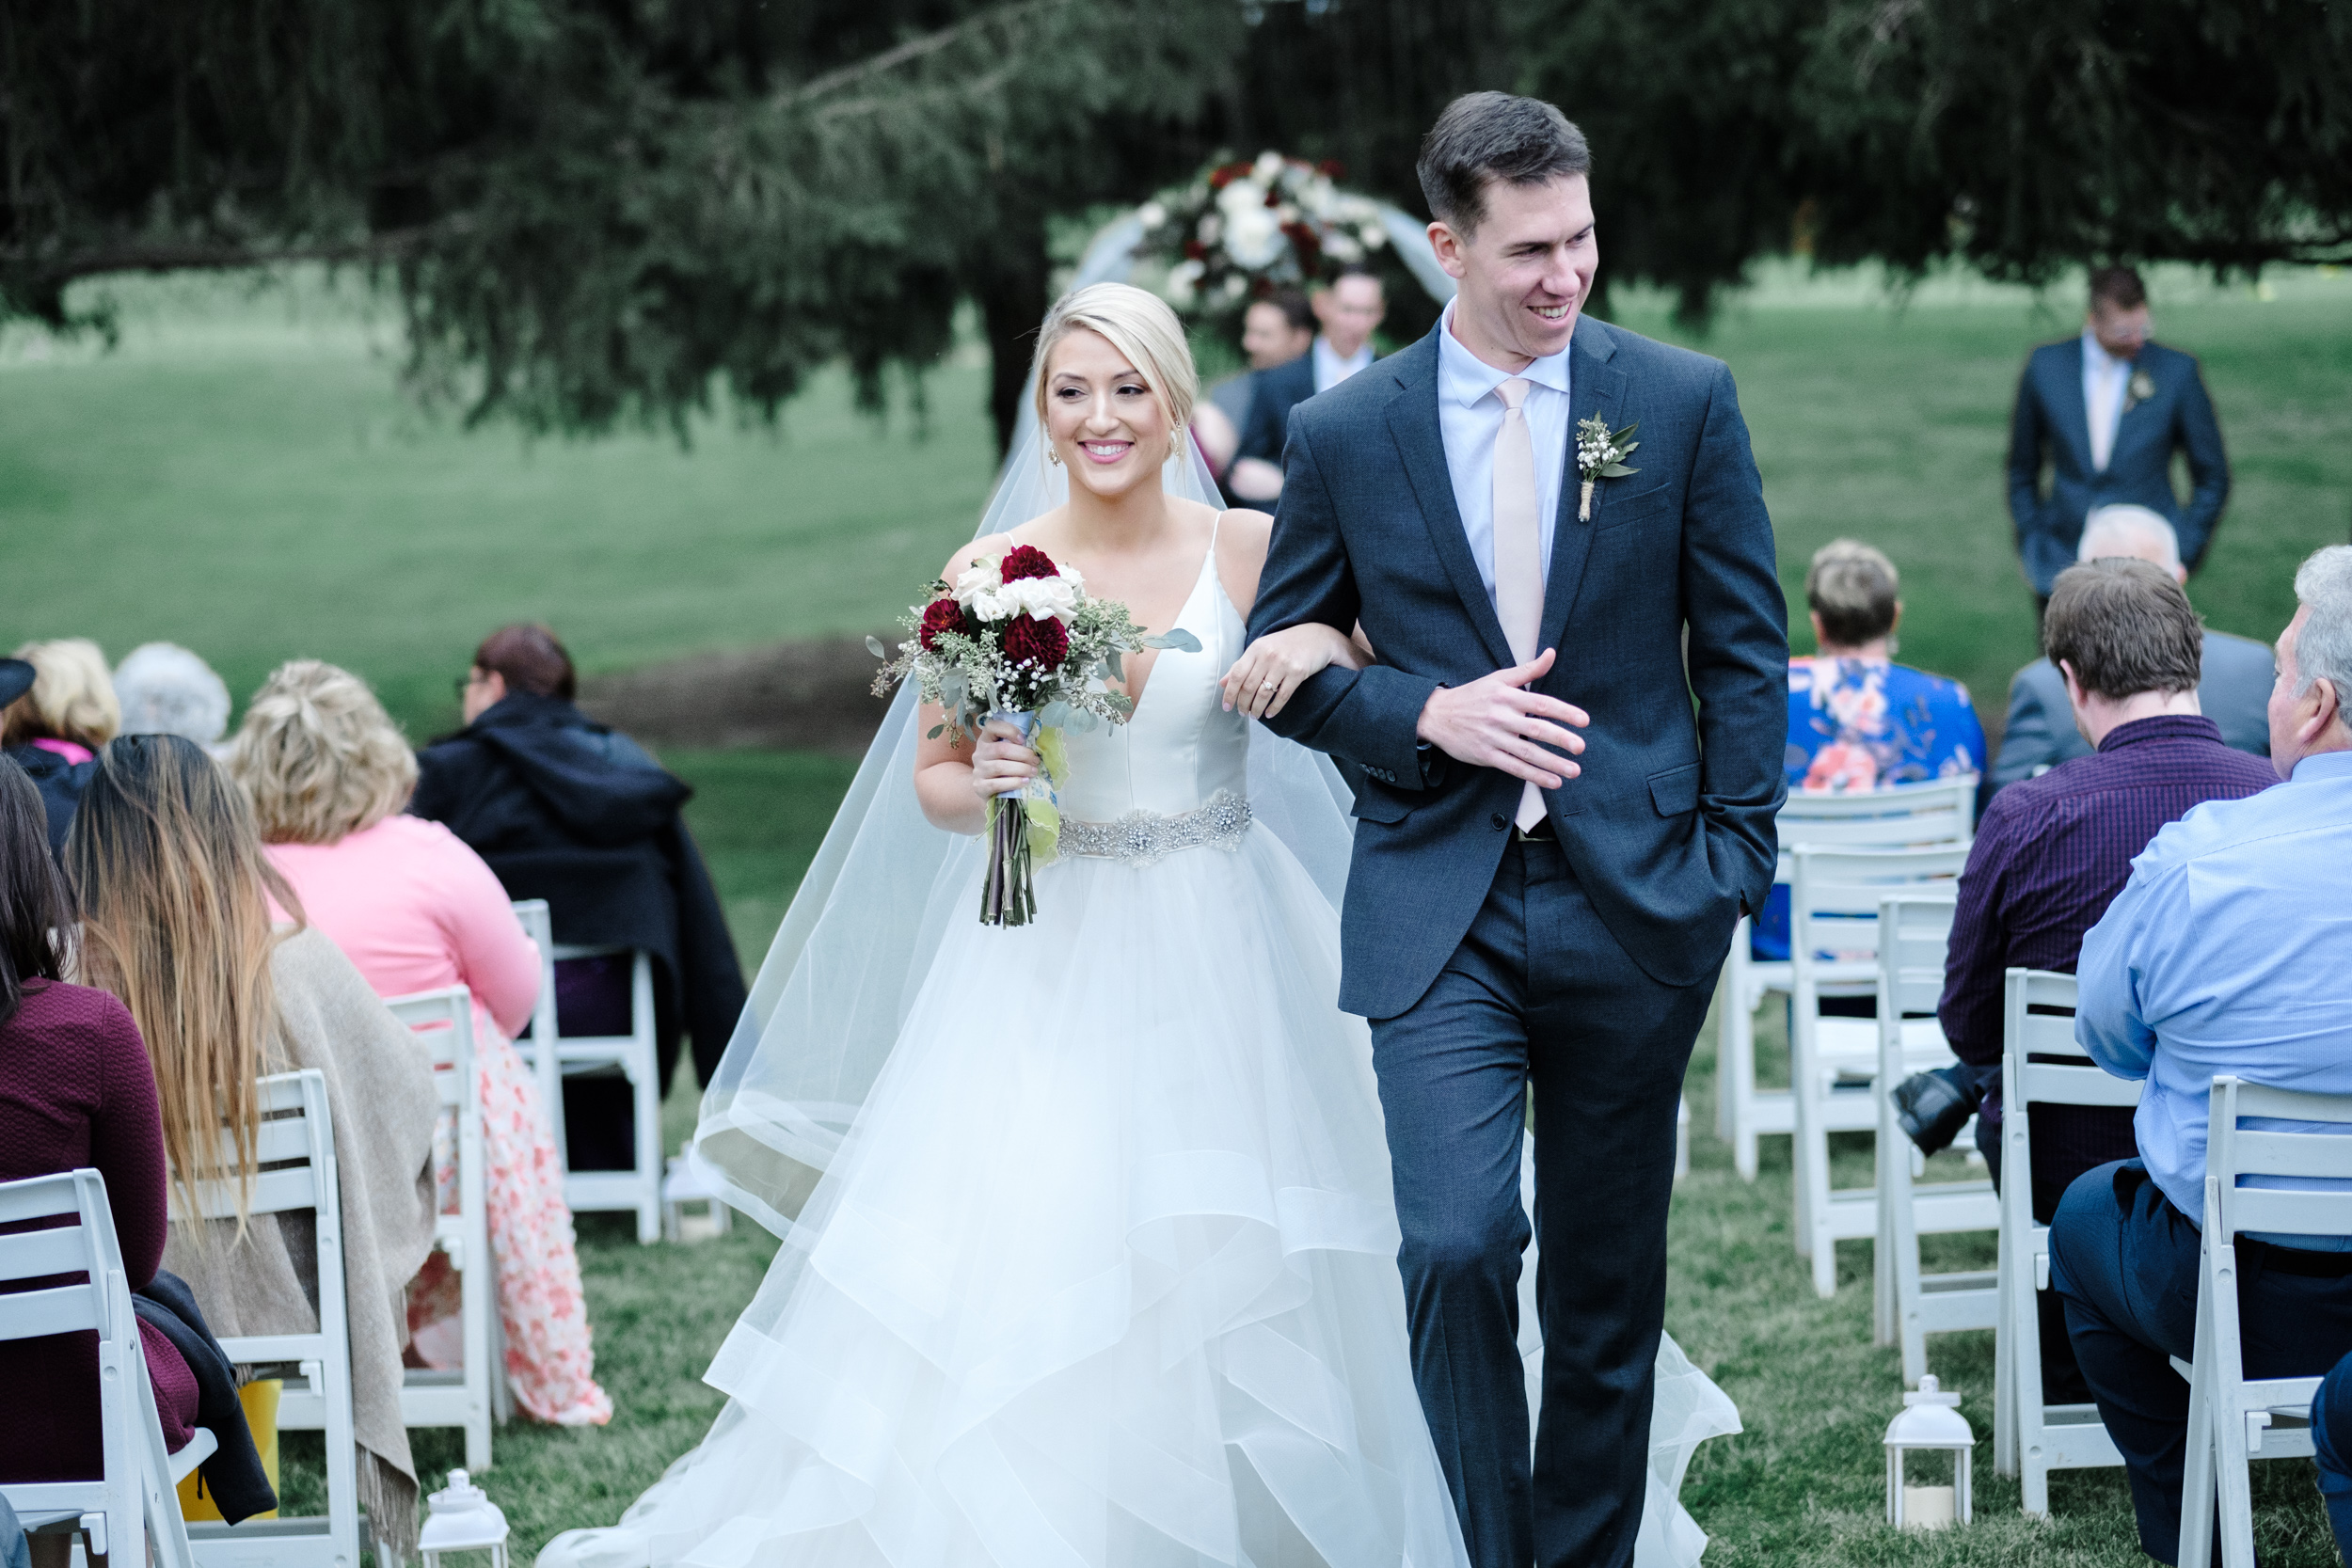 Bride and groom beaming as they walk out of their outdoor ceremony at Rockford Bank and Trust Pavilion.